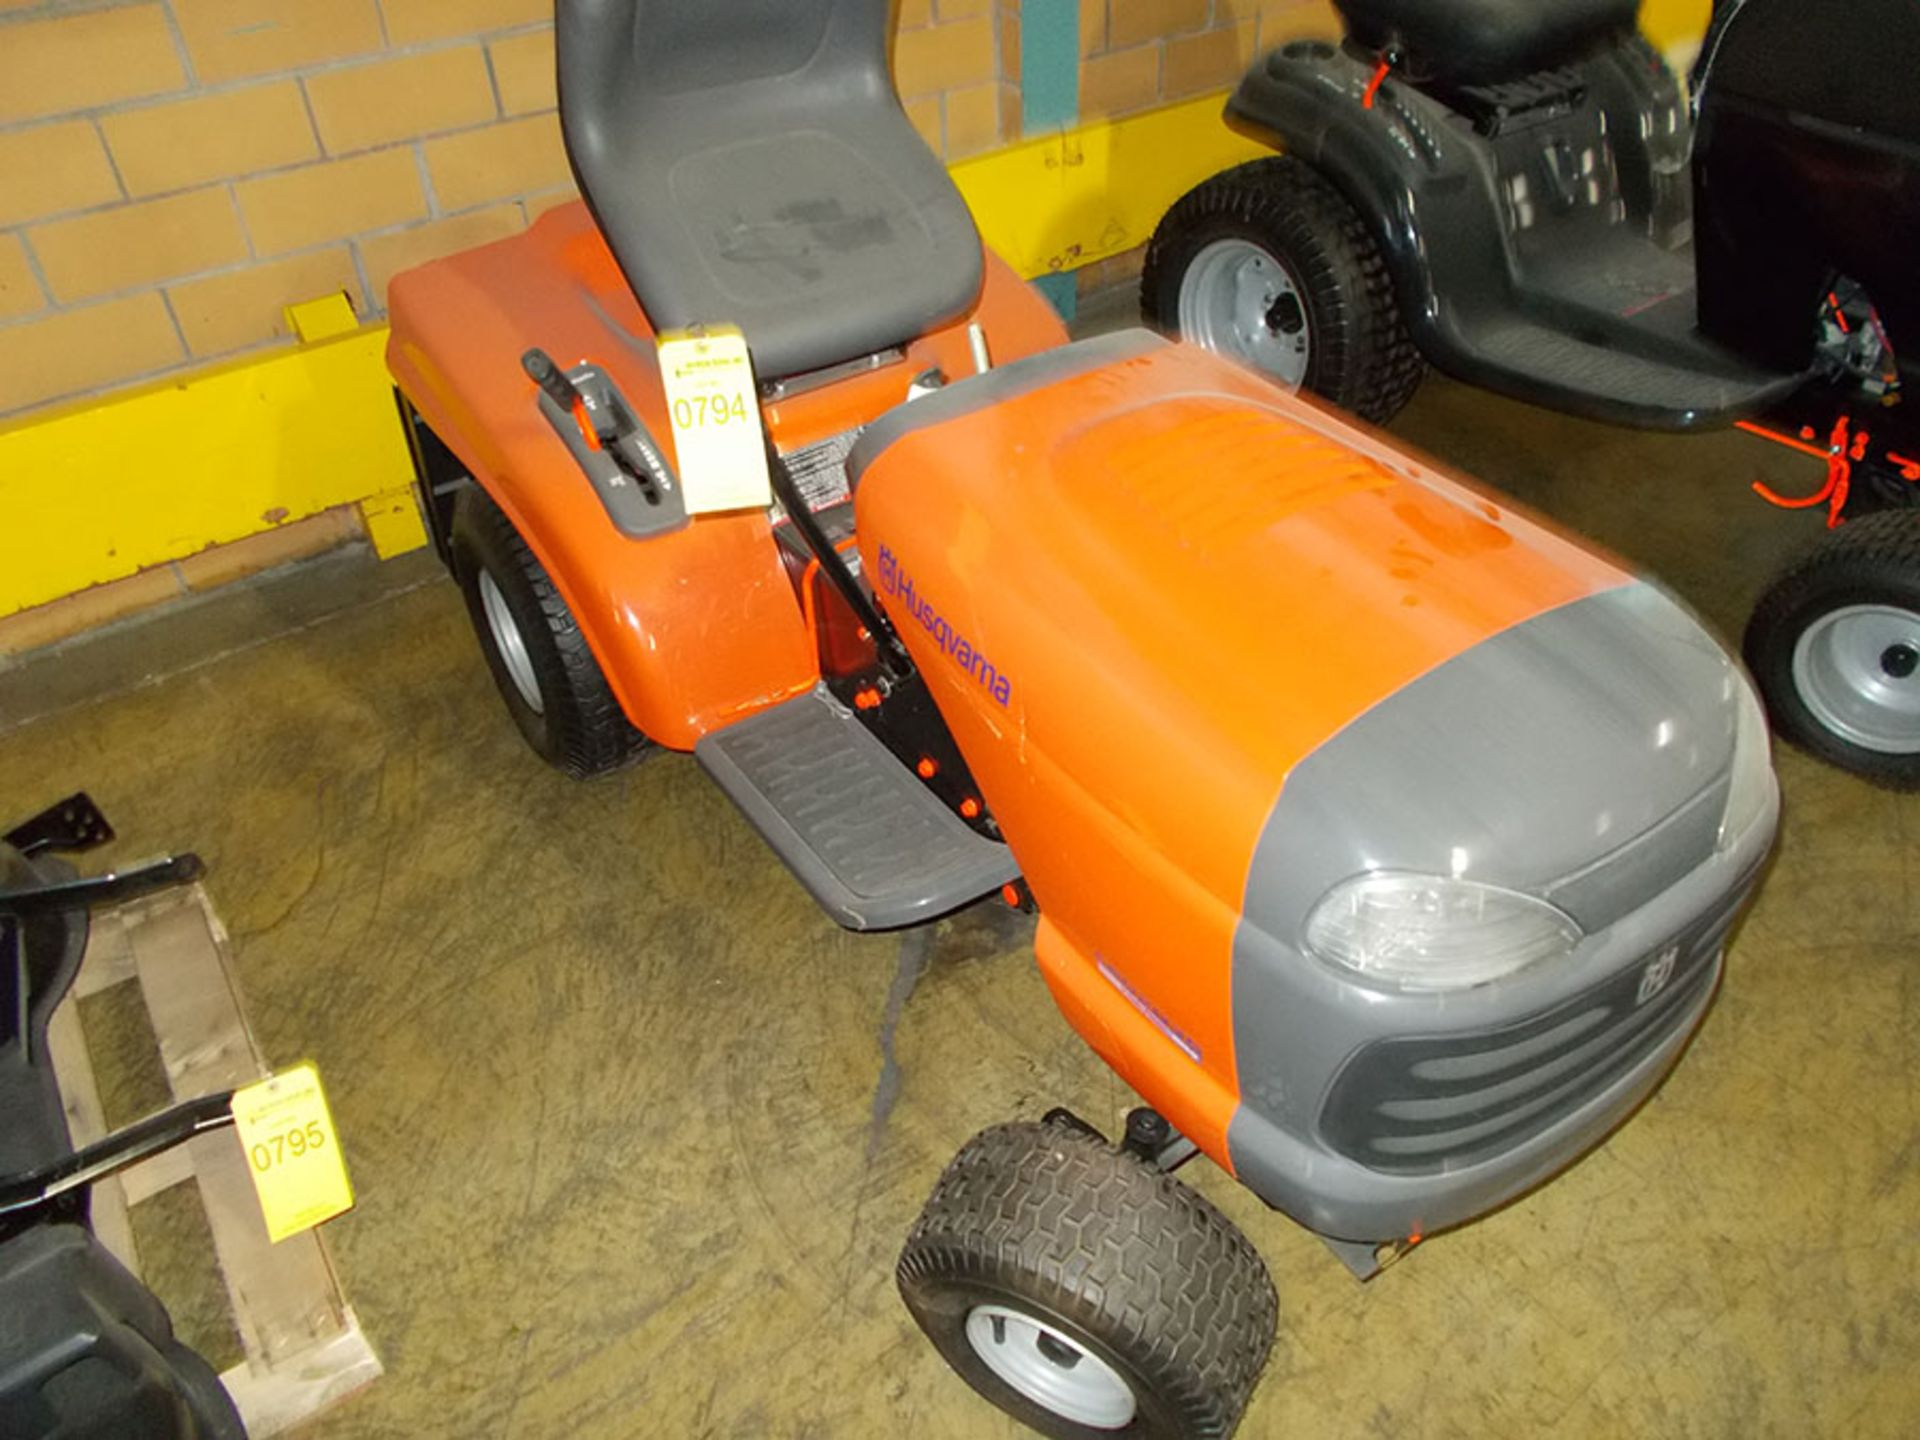 Lot 794 - HUSQVARNA RIDING LAWNMOWER (OUT OF SERVICE)